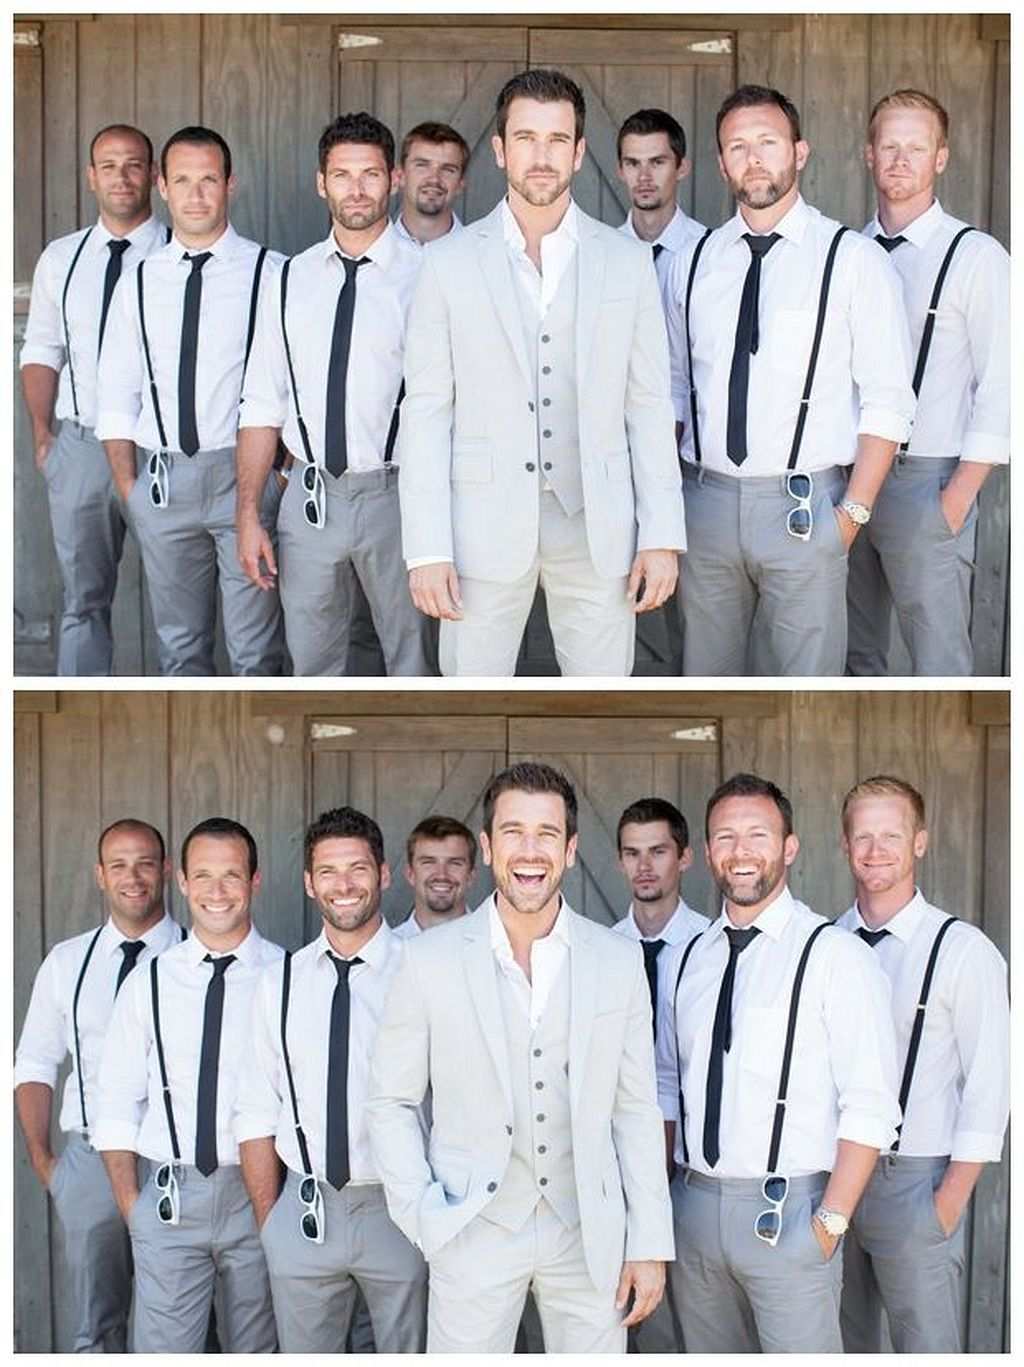 groomsmen photo shoot ideas photo shoots wedding and wedding